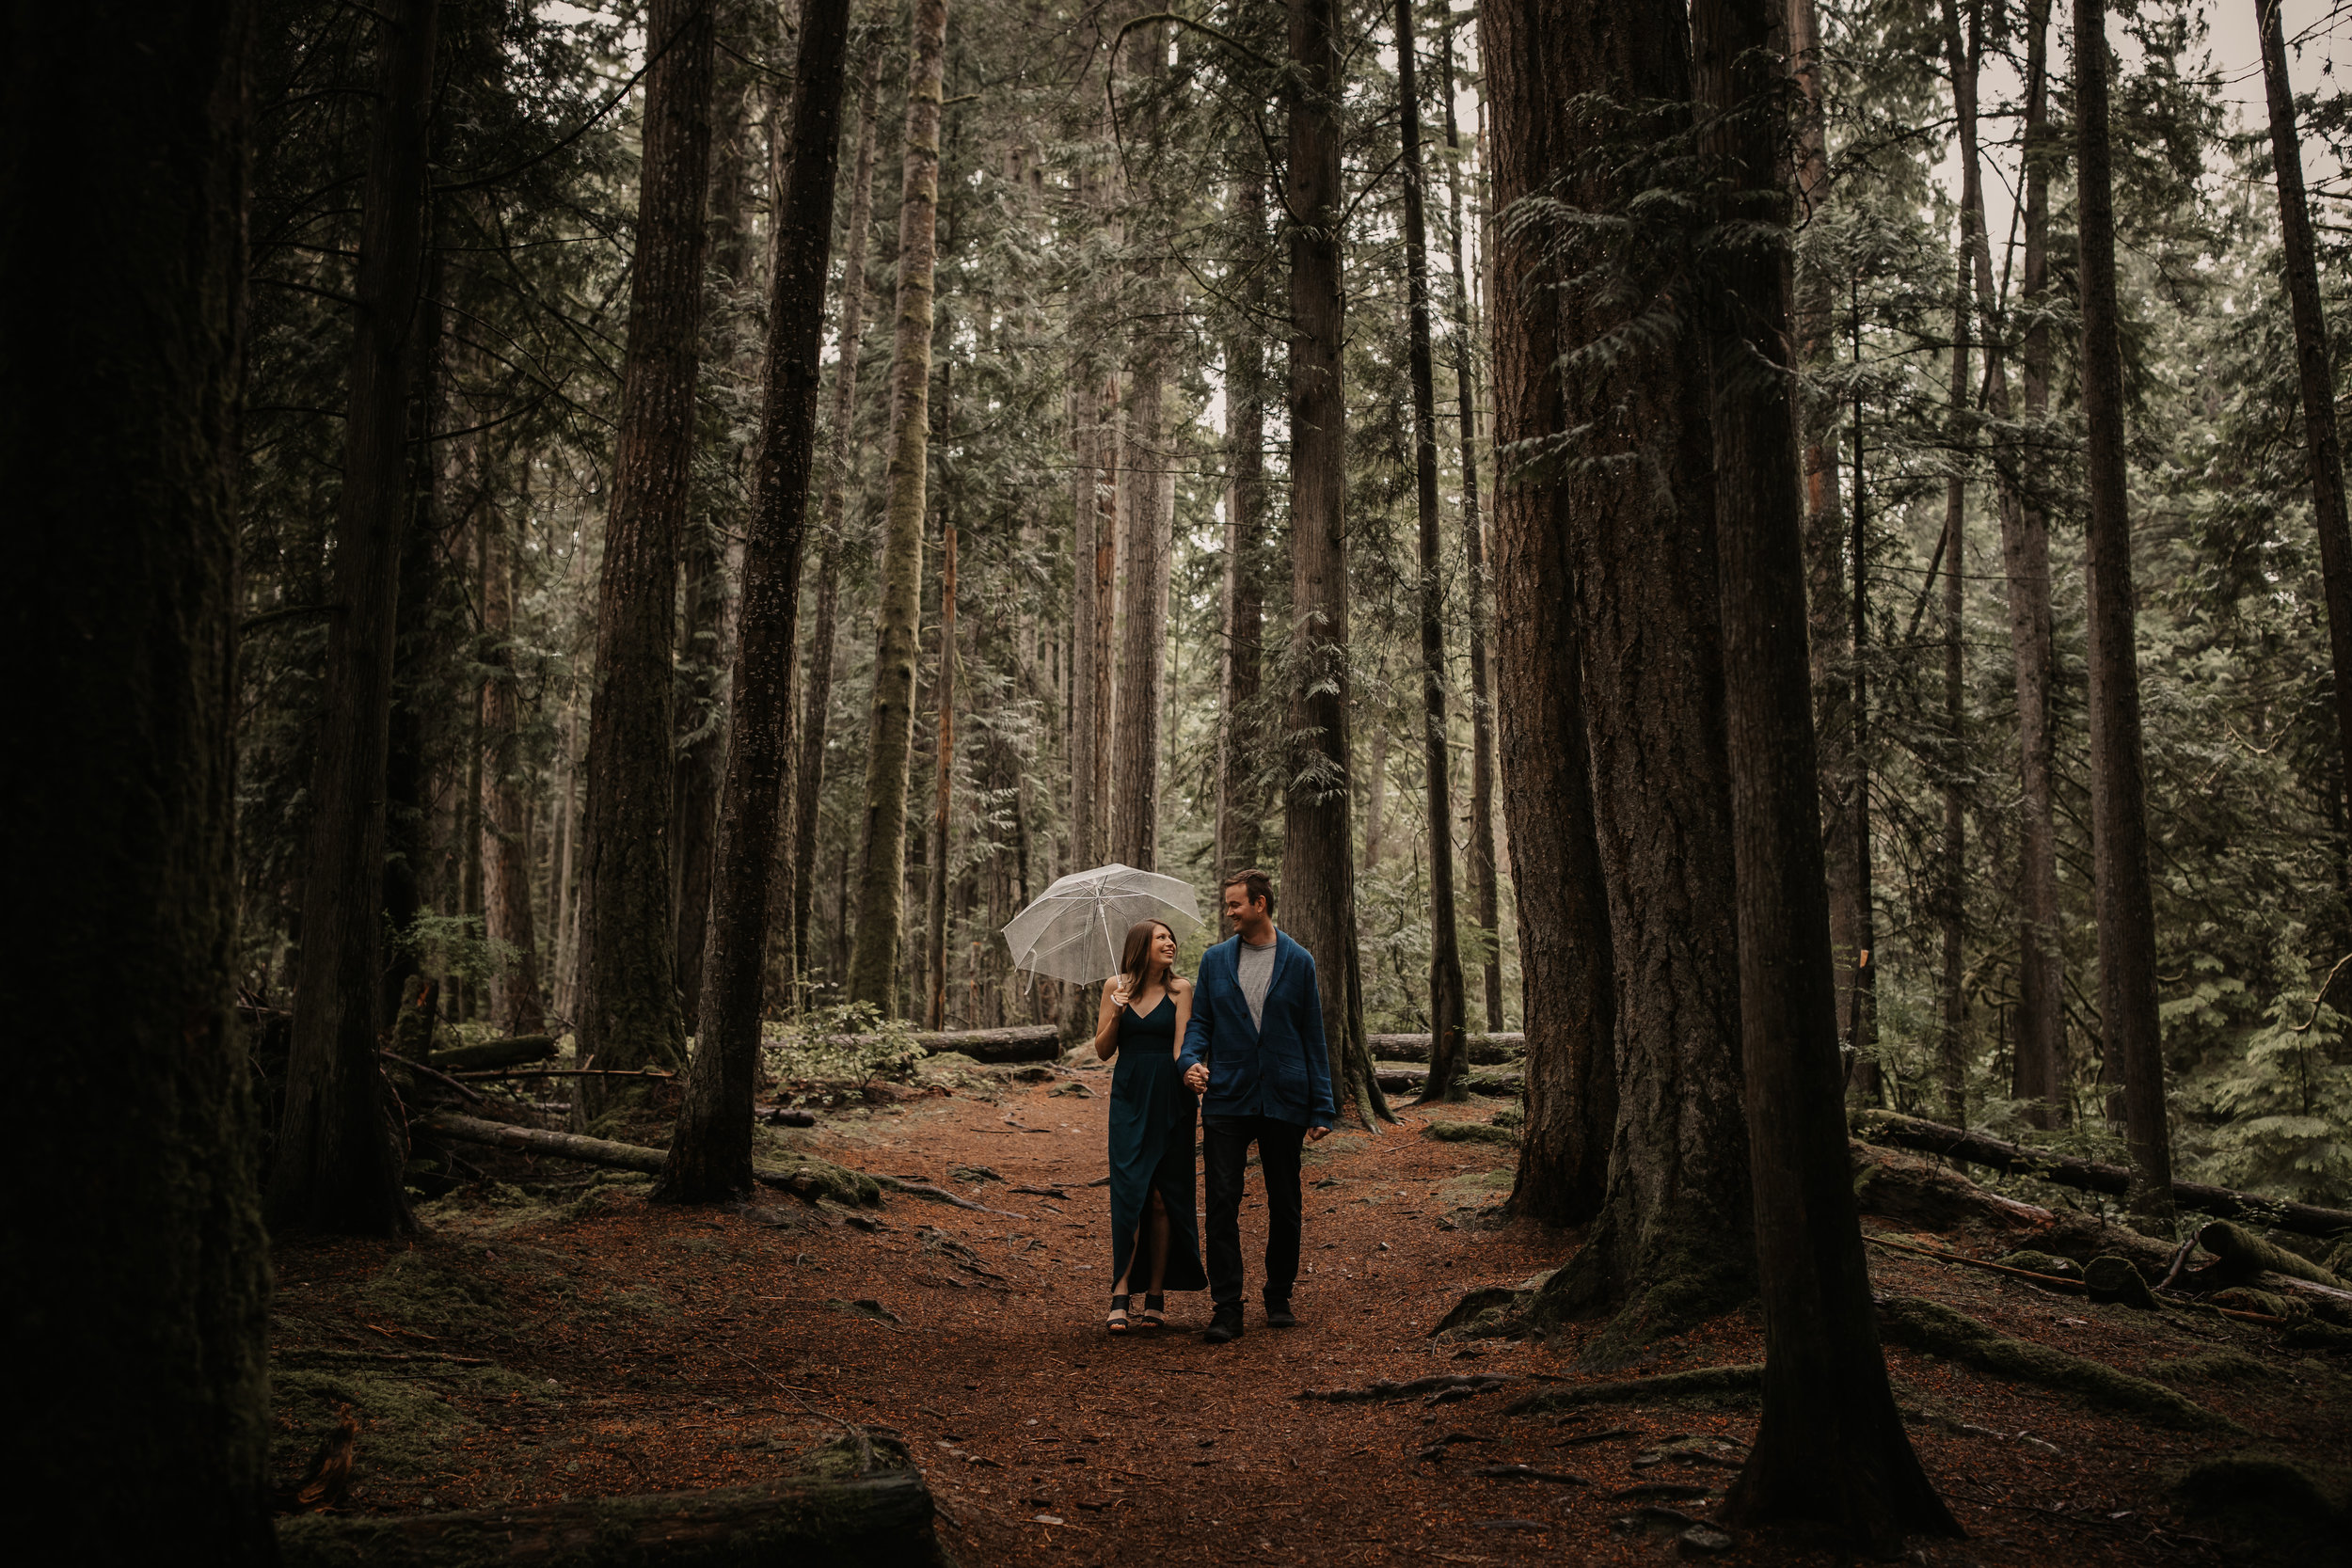 SUNSHINE COAST FOREST & BEACH ENGAGEMENT PHOTOS — Ashley & Antoine — JENNIFER PICARD PHOTOGRAPHY216.JPG